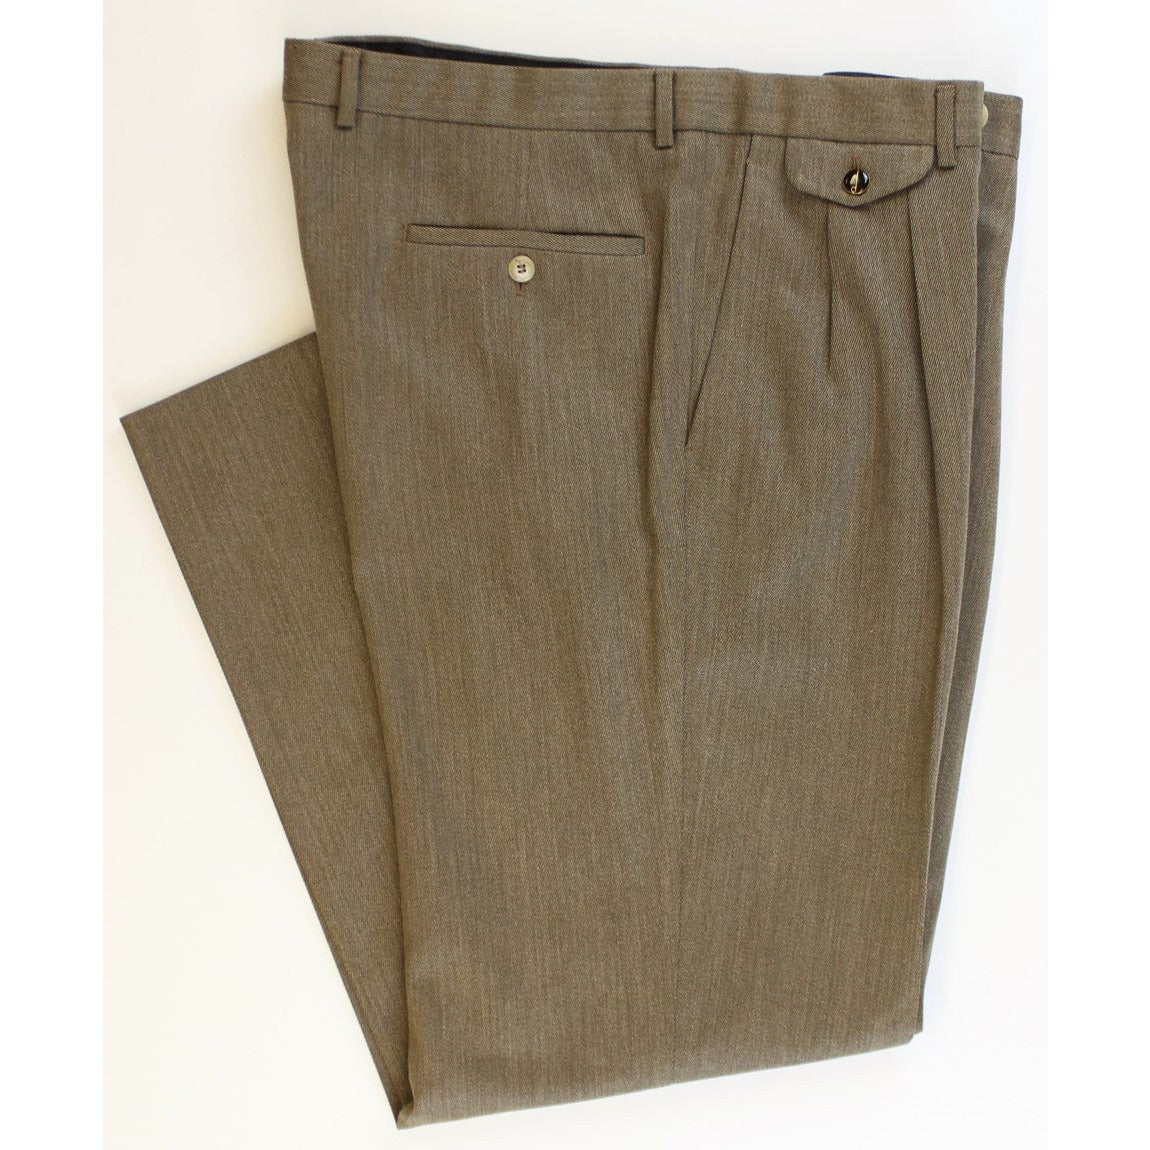 Alfred Dunhill Calvalry Twill Trousers